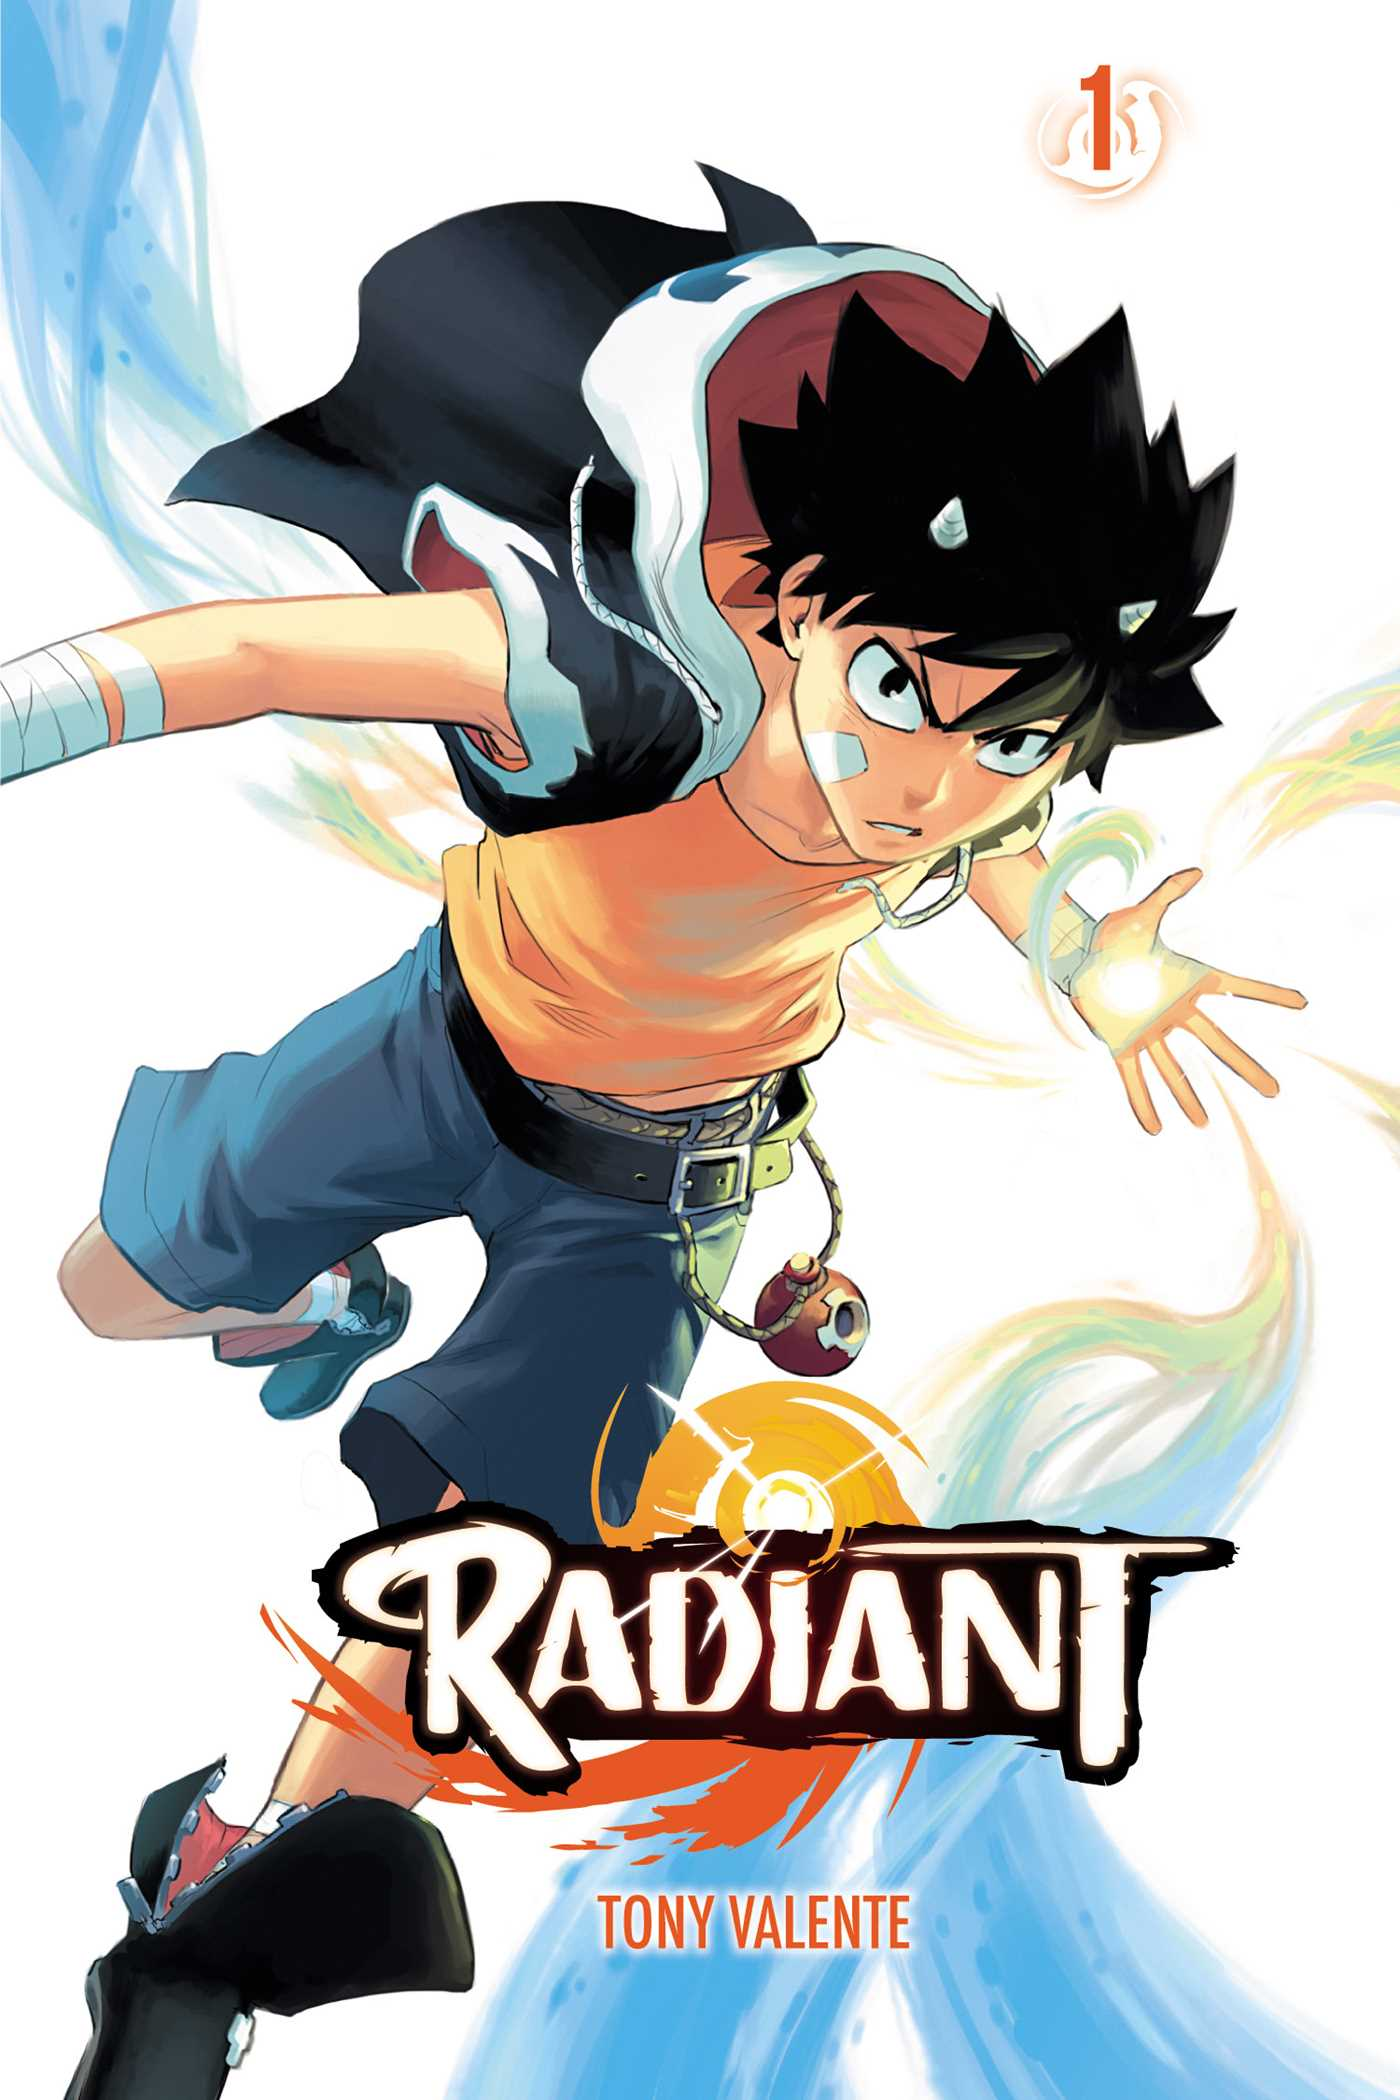 Radiant Vol. 1 Review